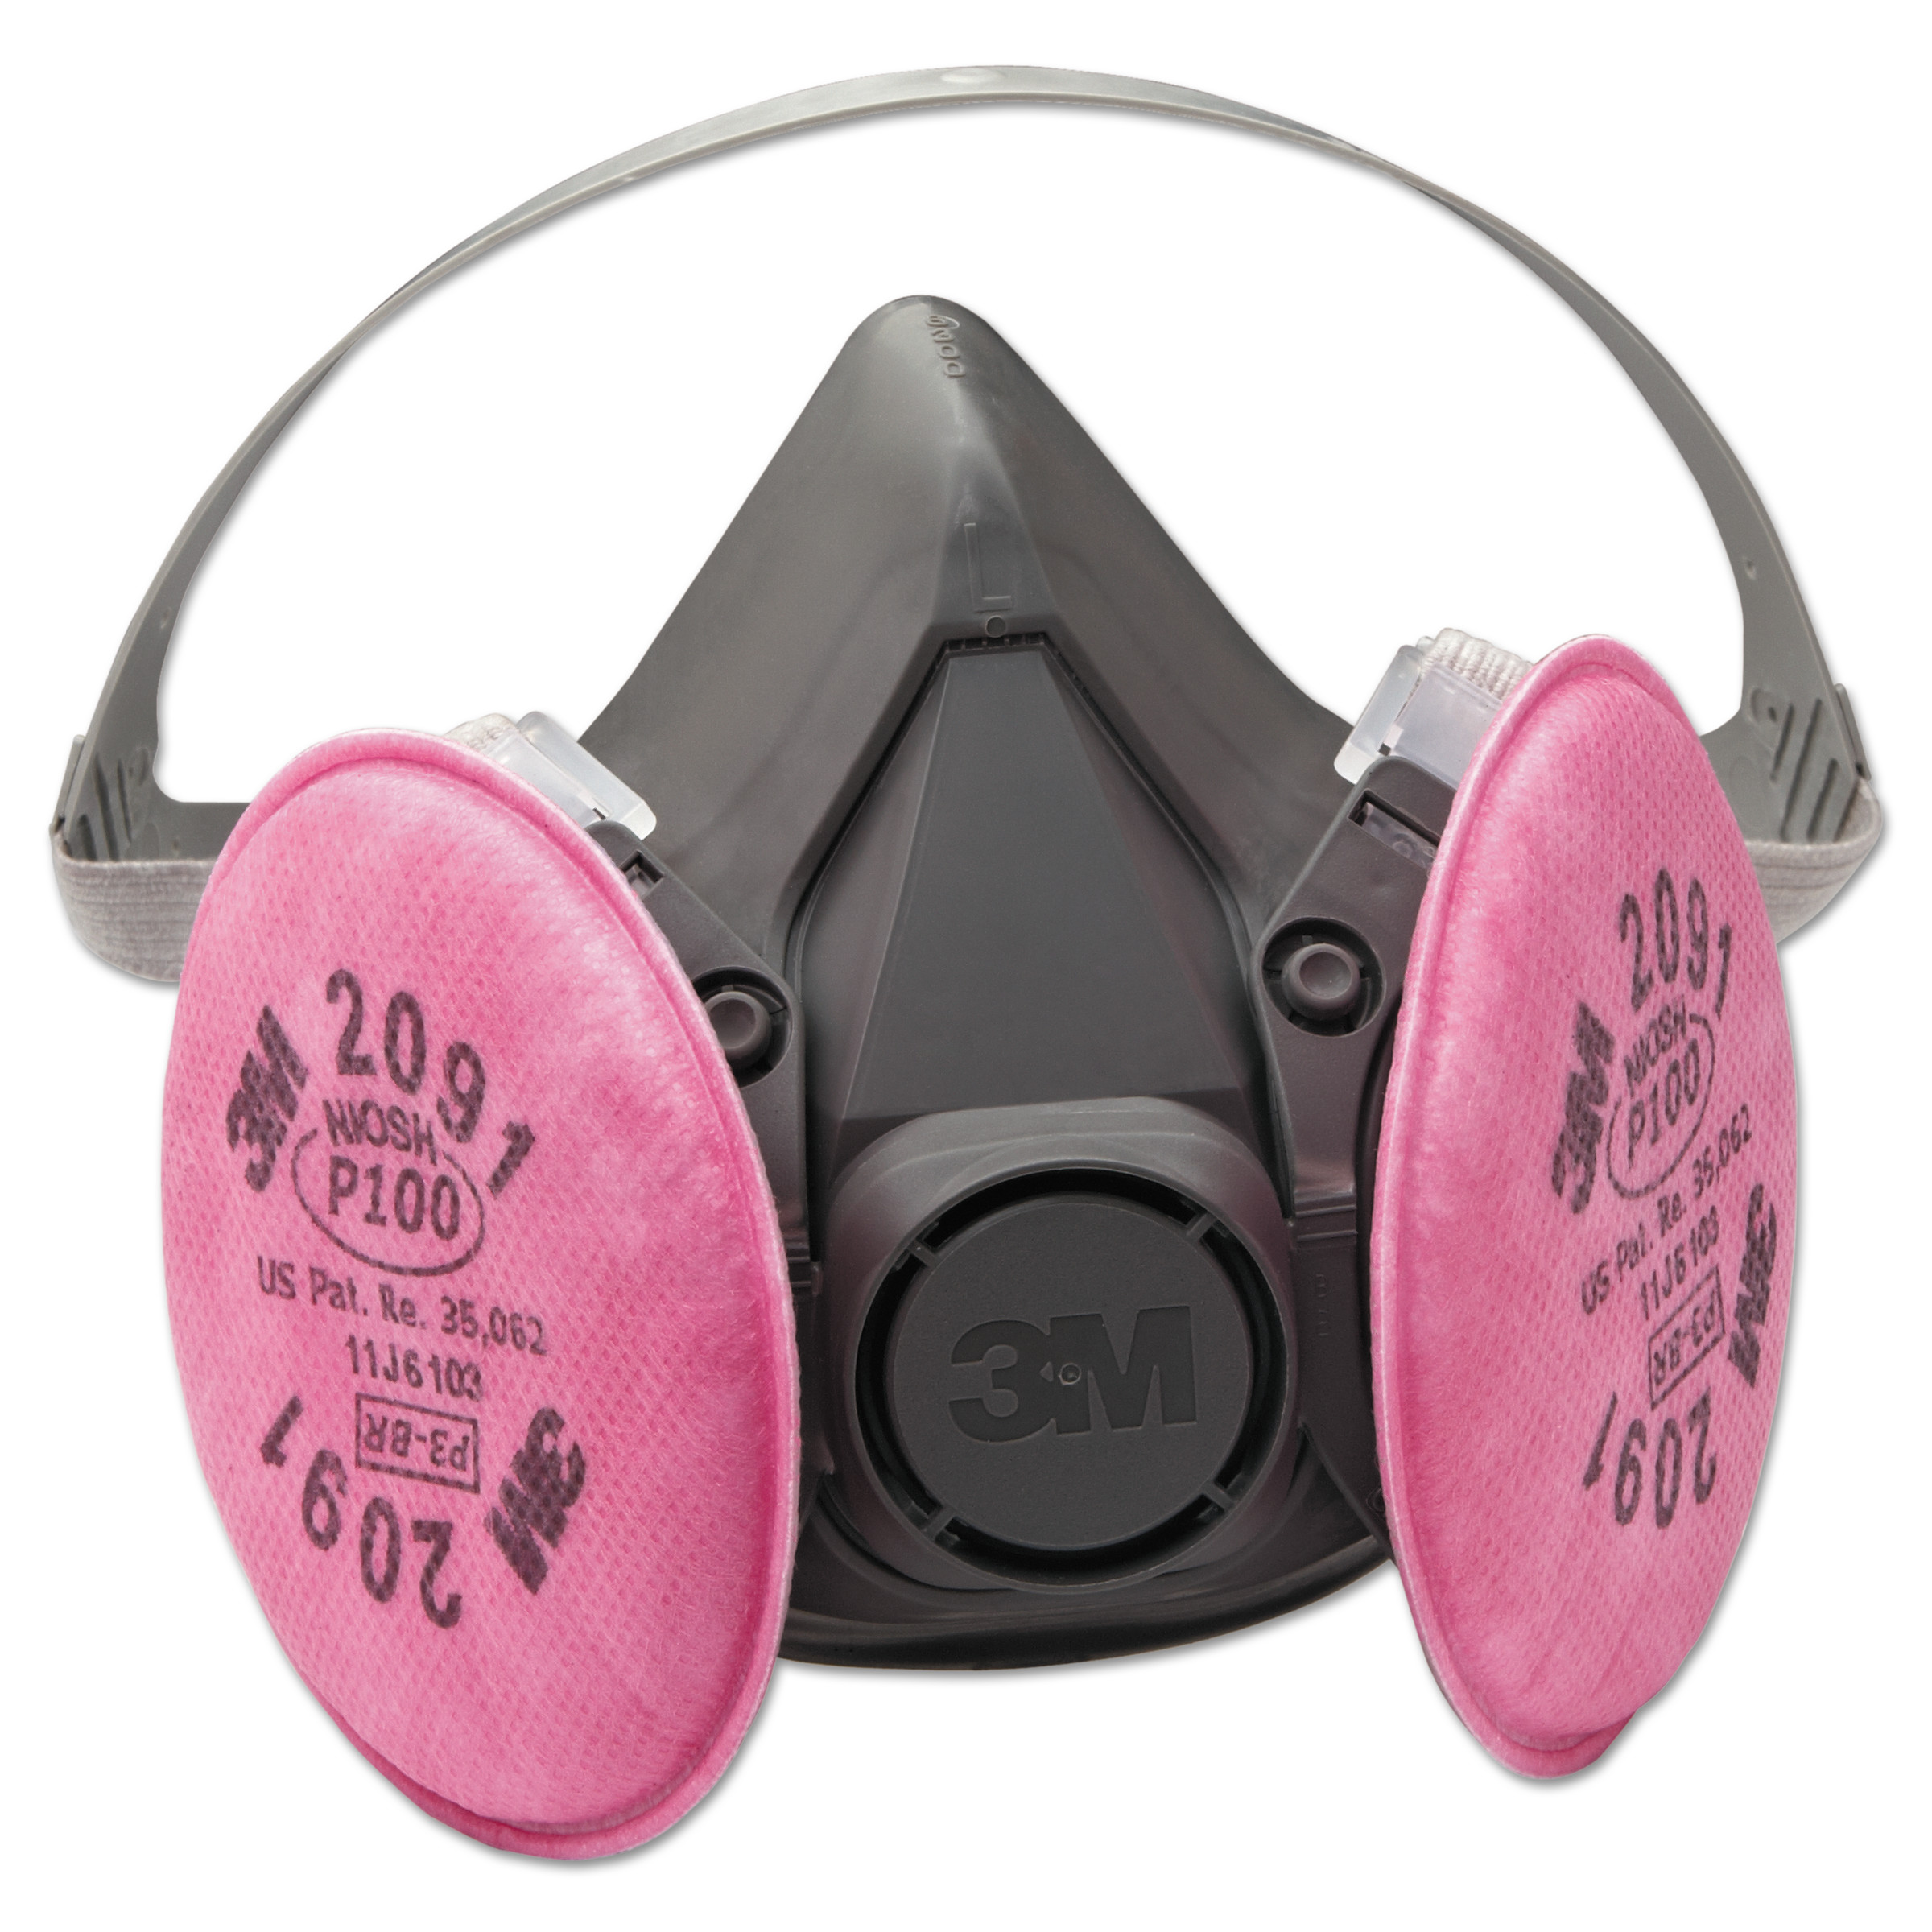 3M Half Facepiece Respirator 6000 Series, Reusable by 3M/COMMERCIAL TAPE DIV.